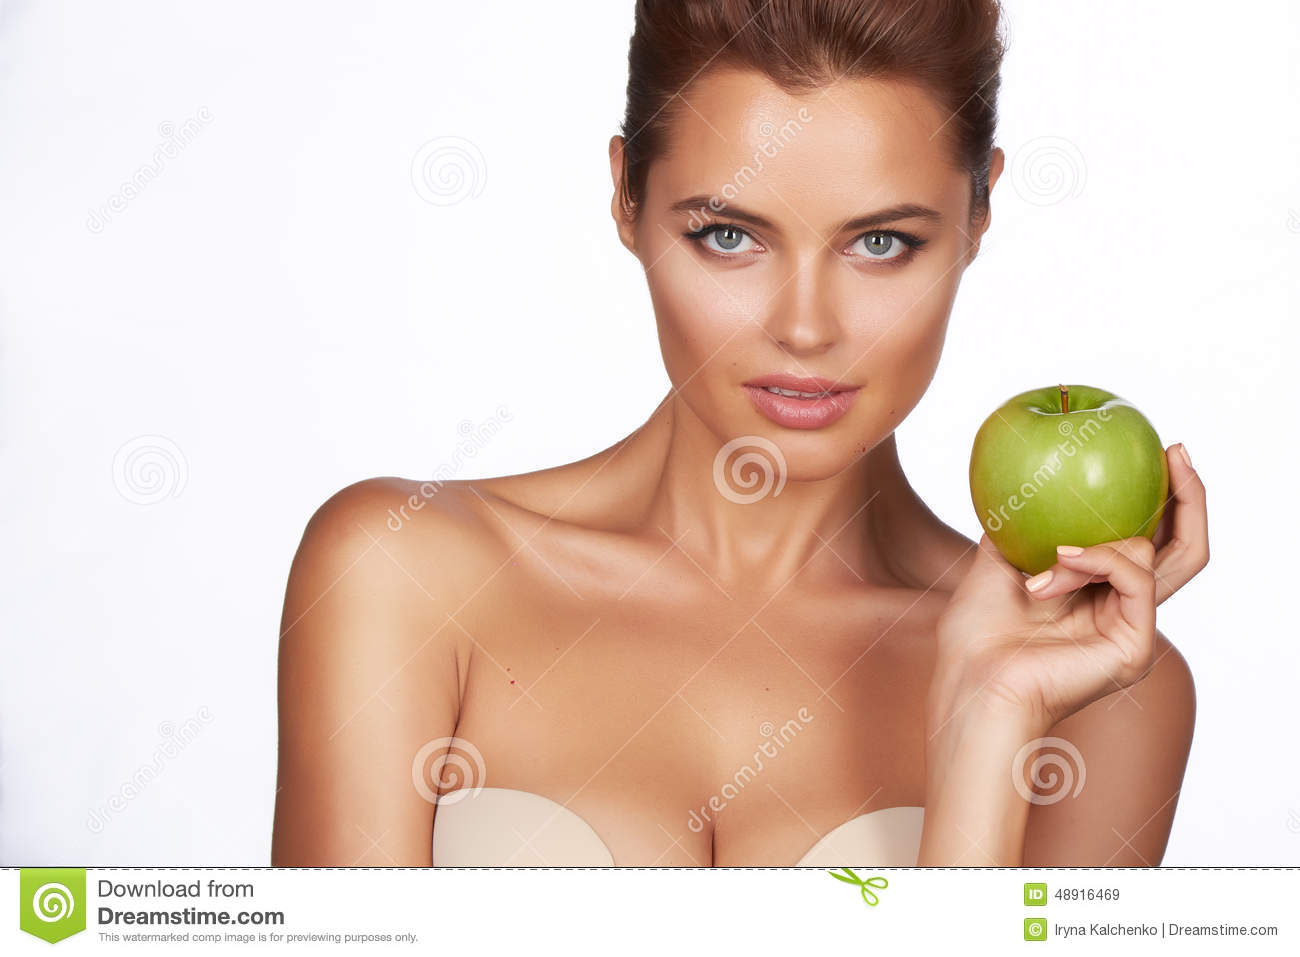 Young Beautiful Girl With Dark Hair Bare Shoulders And Neck Holding Big Green Apple